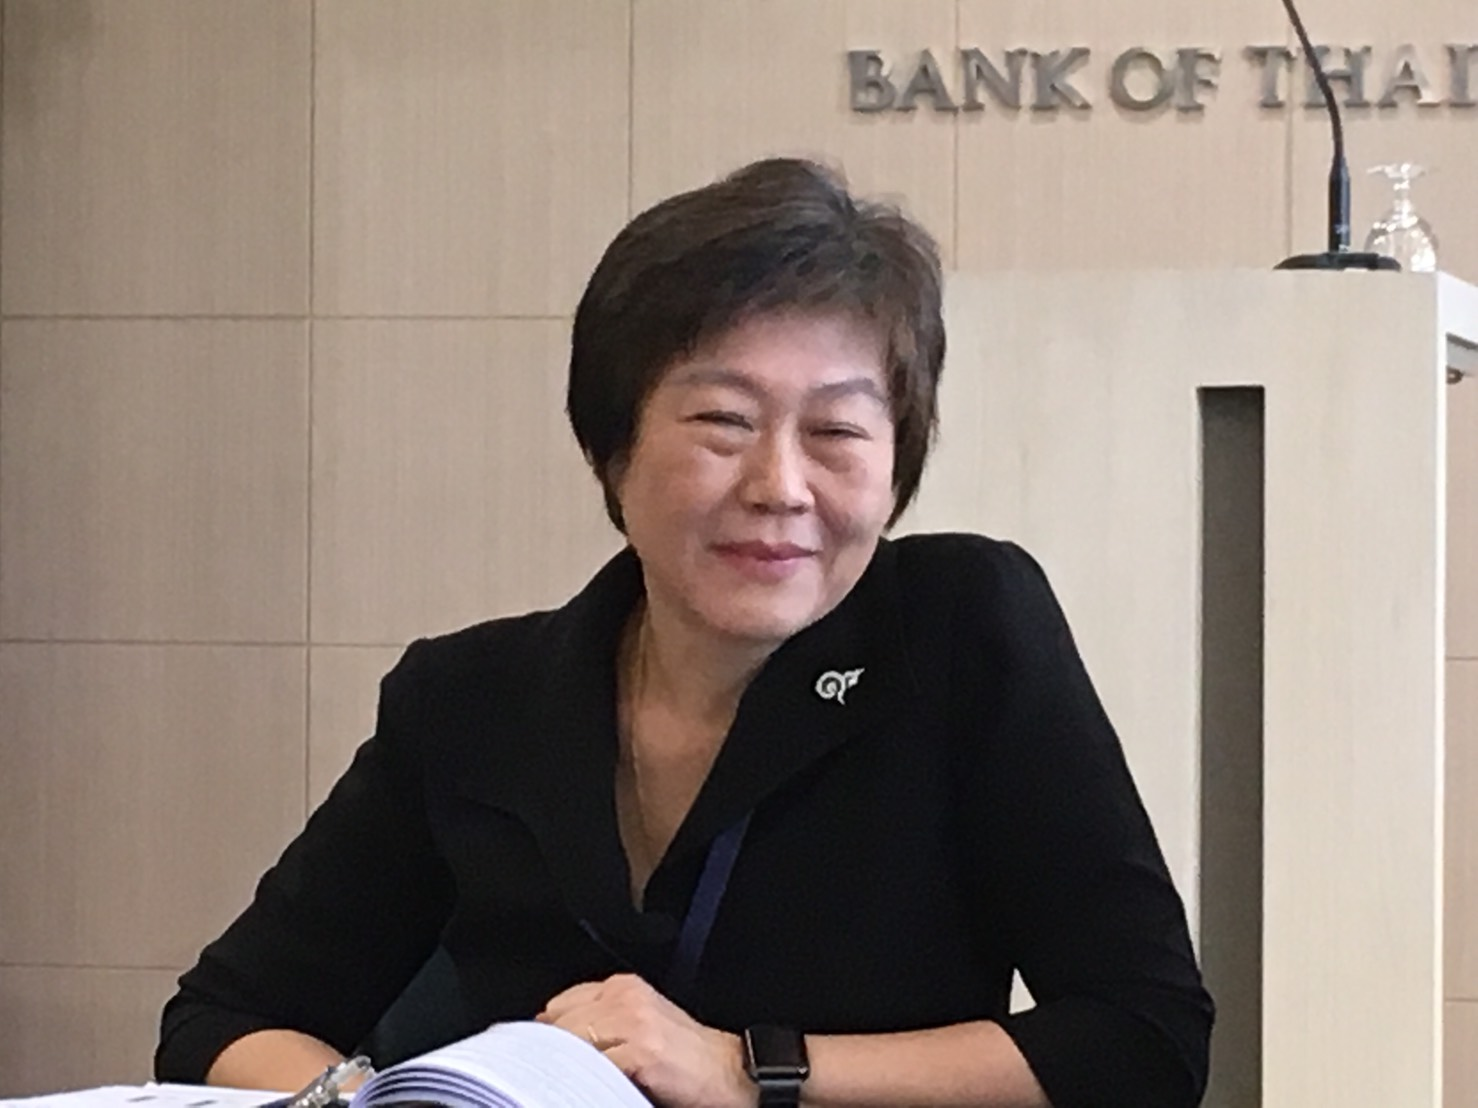 Nisarat Trairatvorakul of Bank of THailand